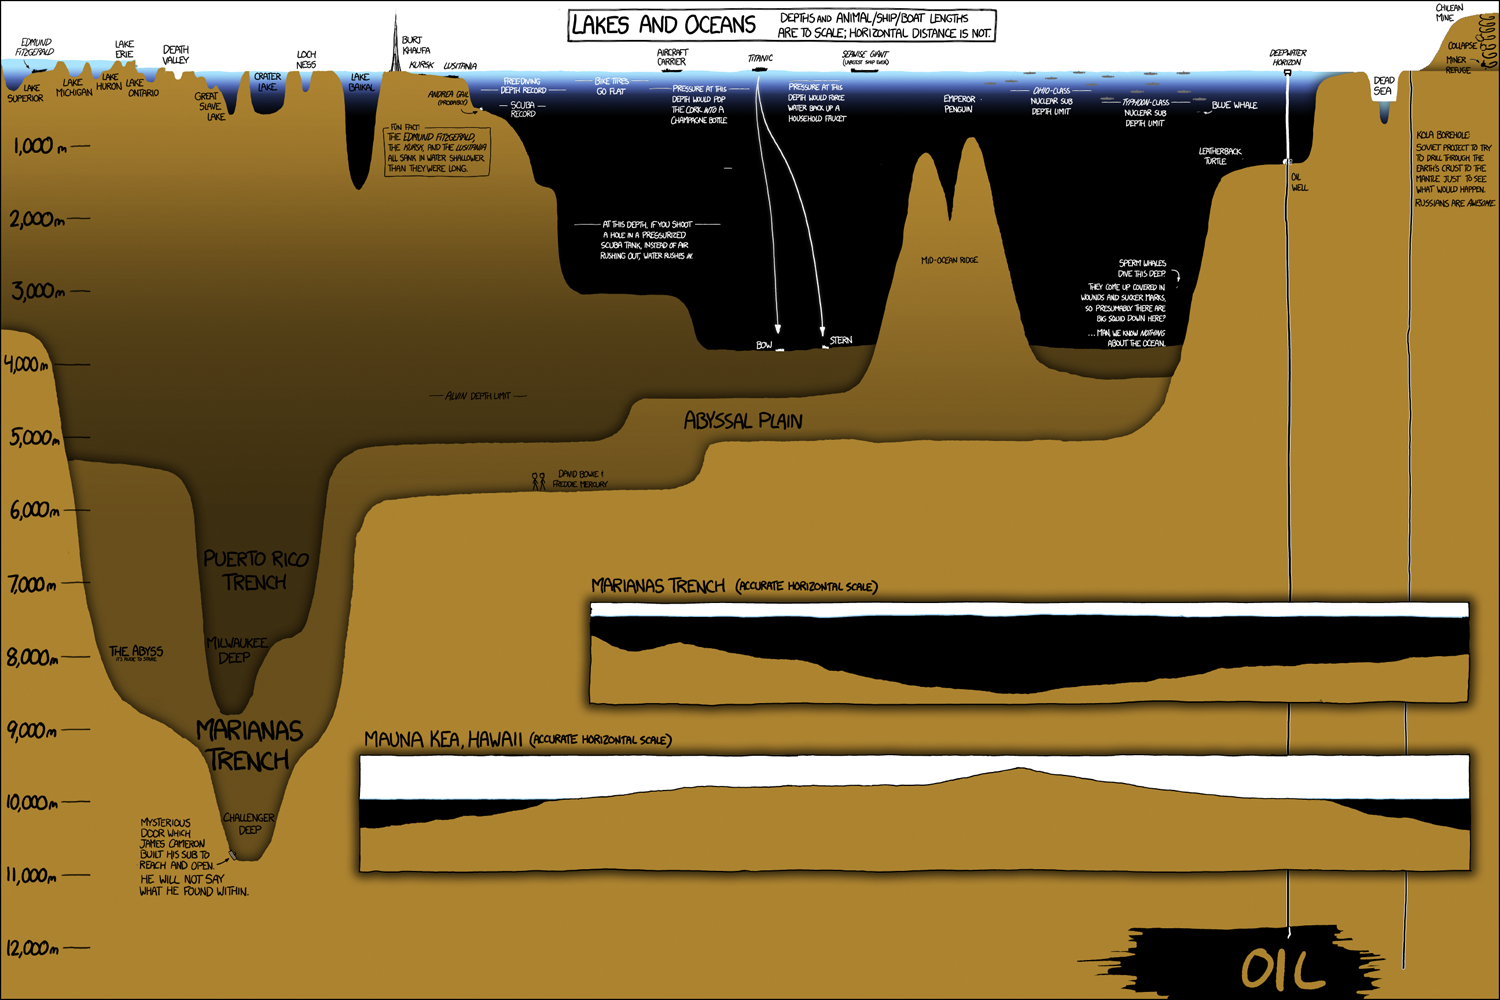 Lakes And Oceans Depths Compared